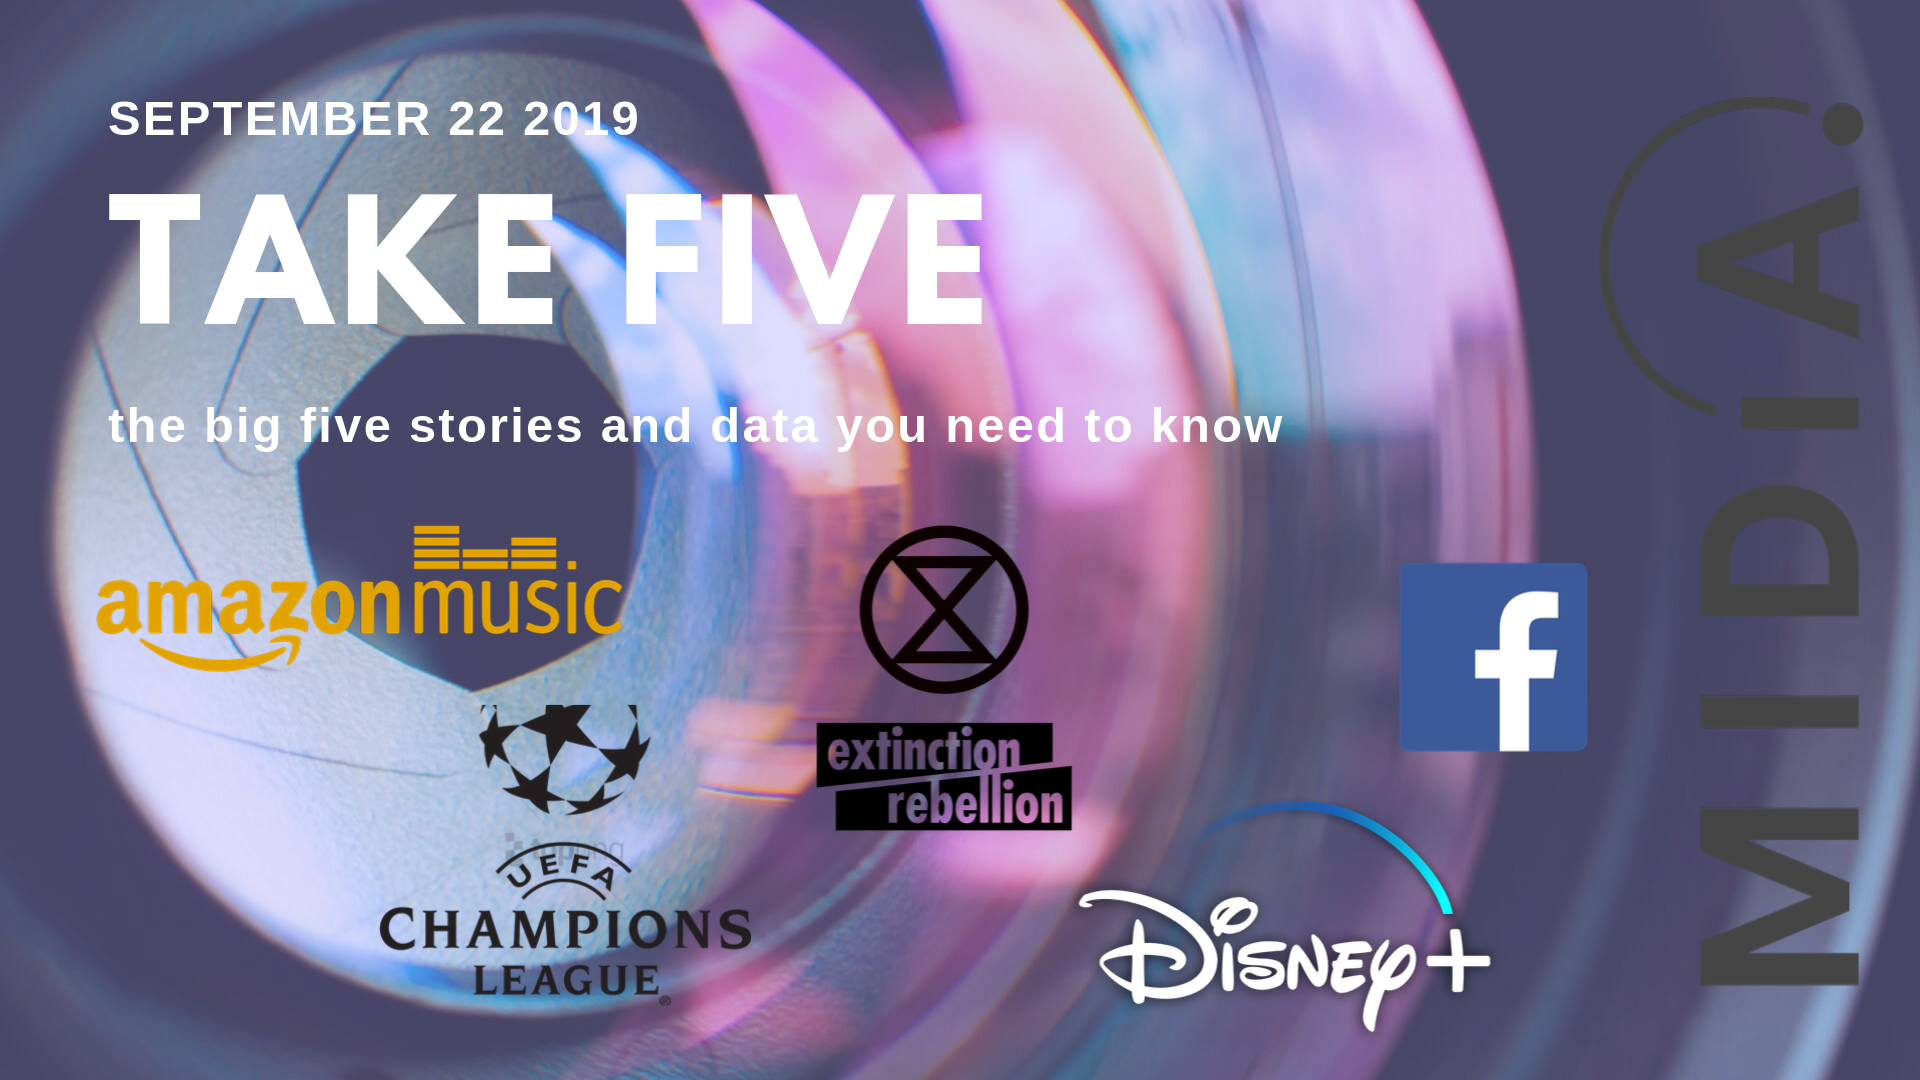 Cover image for Take Five (the big five stories and data you need to know) September 27th 2019